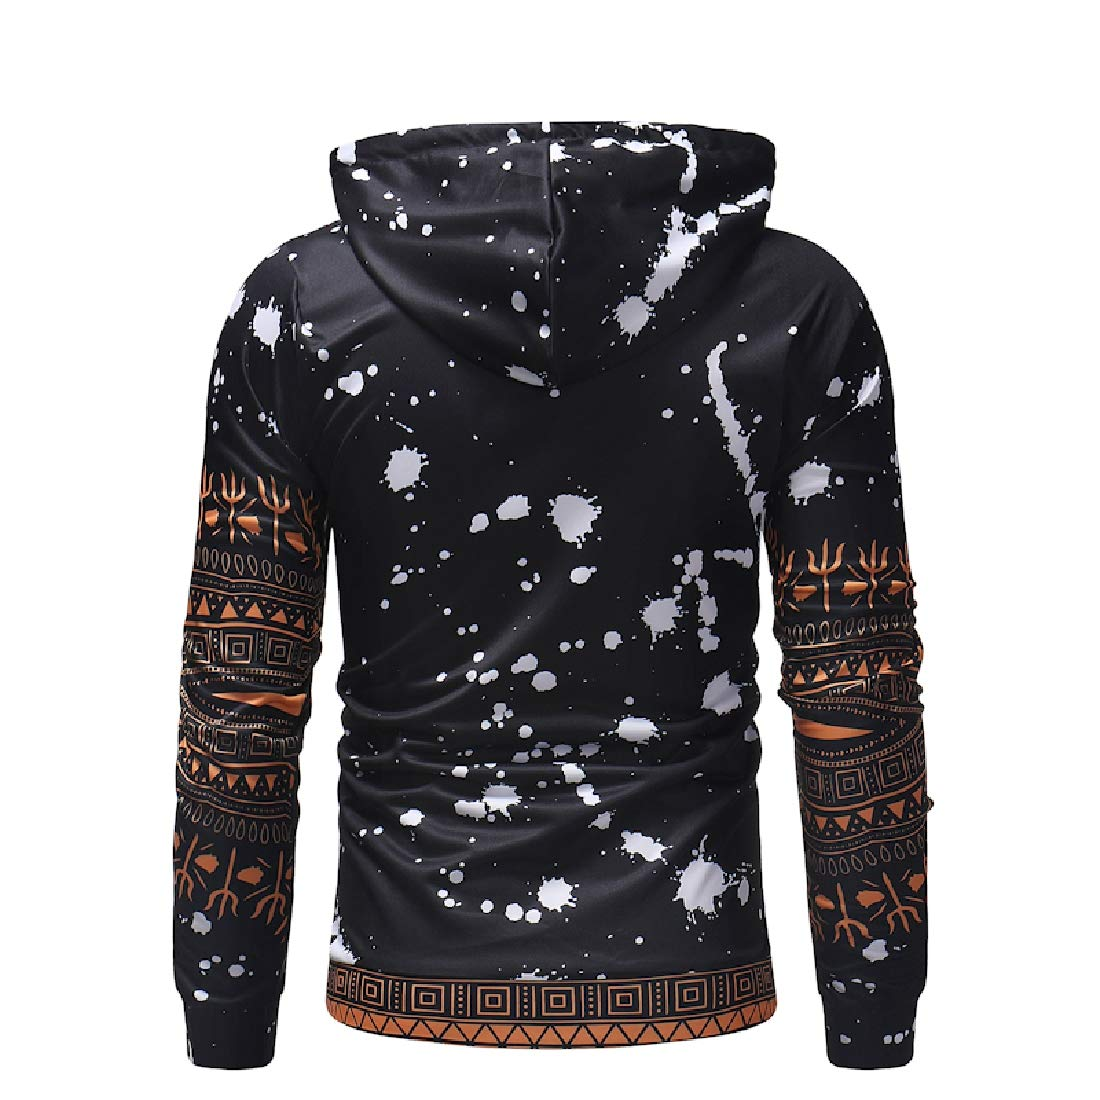 YUNY Mens African Hoodie Fall Winter Long-Sleeve Pullover Hoodie Jacket Black 2XL